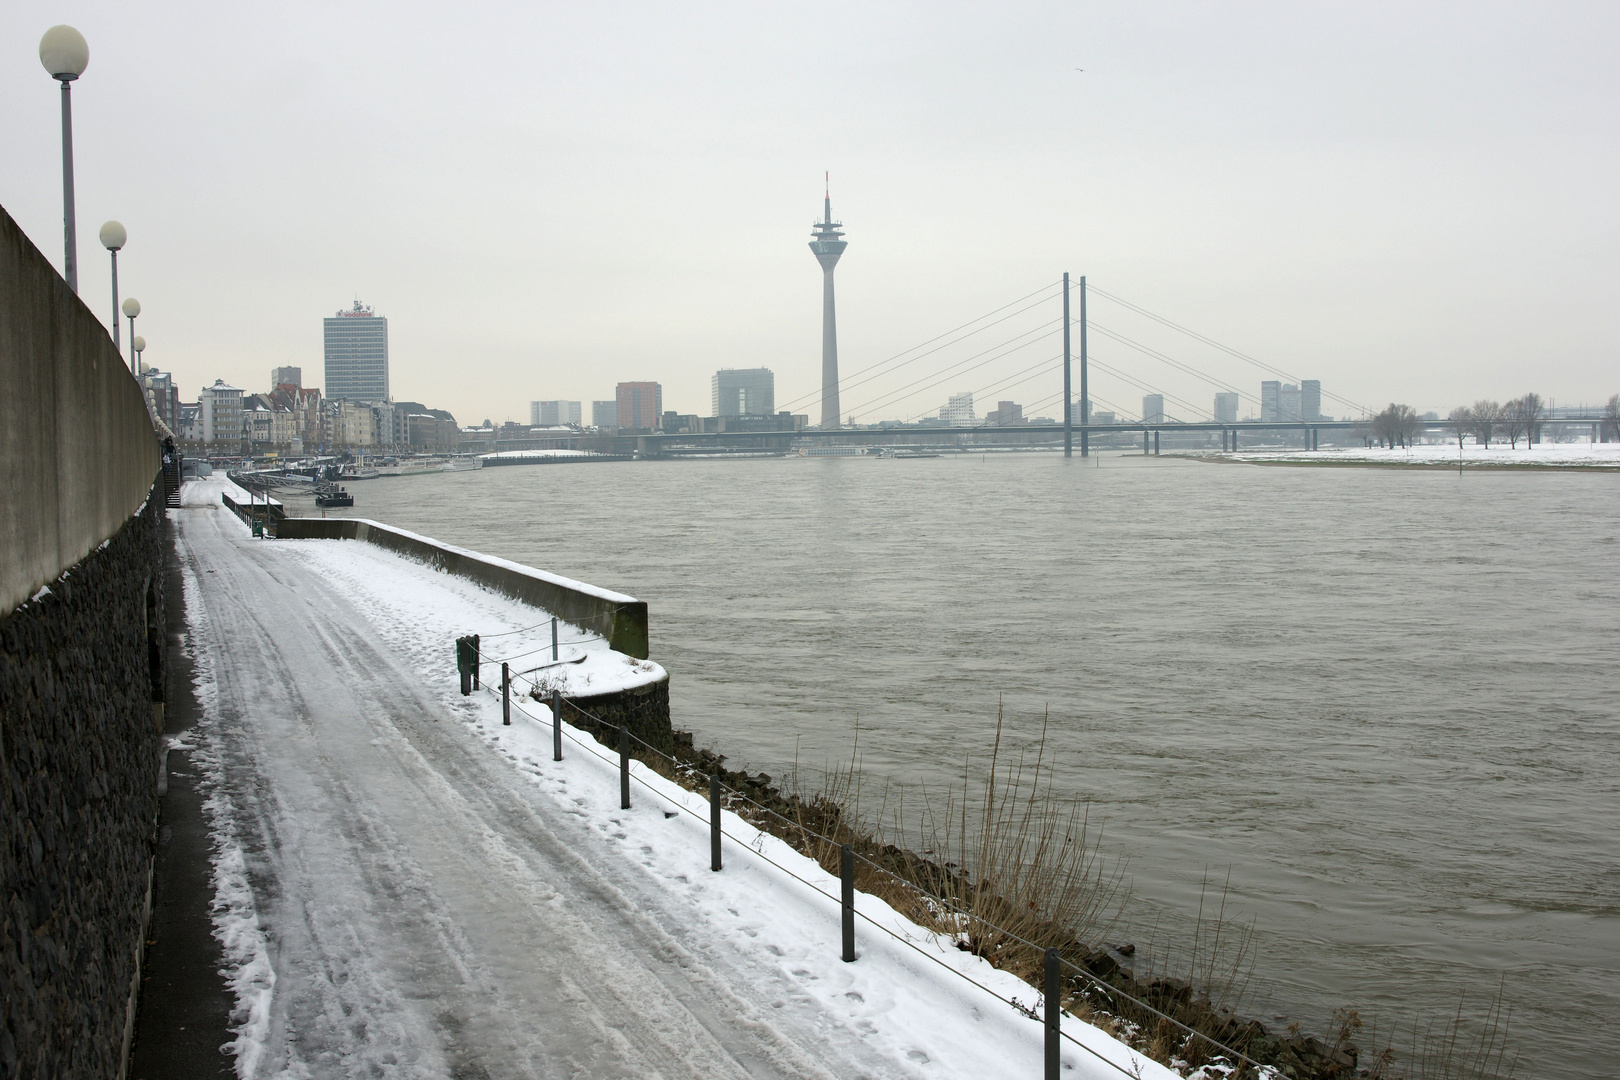 skyline d sseldorf im schnee am rheinufer foto bild landschaft bach fluss see fl sse. Black Bedroom Furniture Sets. Home Design Ideas